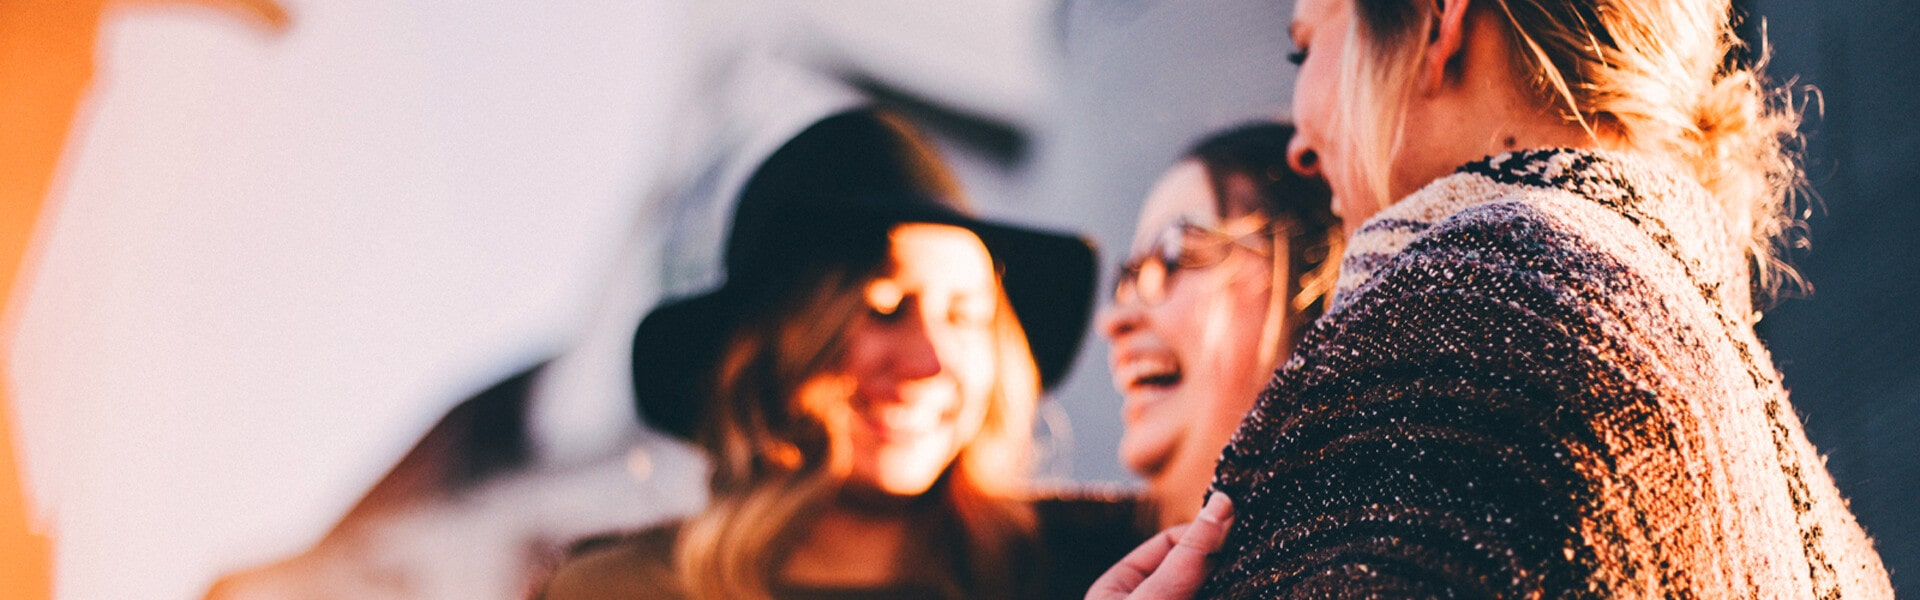 a group of female friends laughing